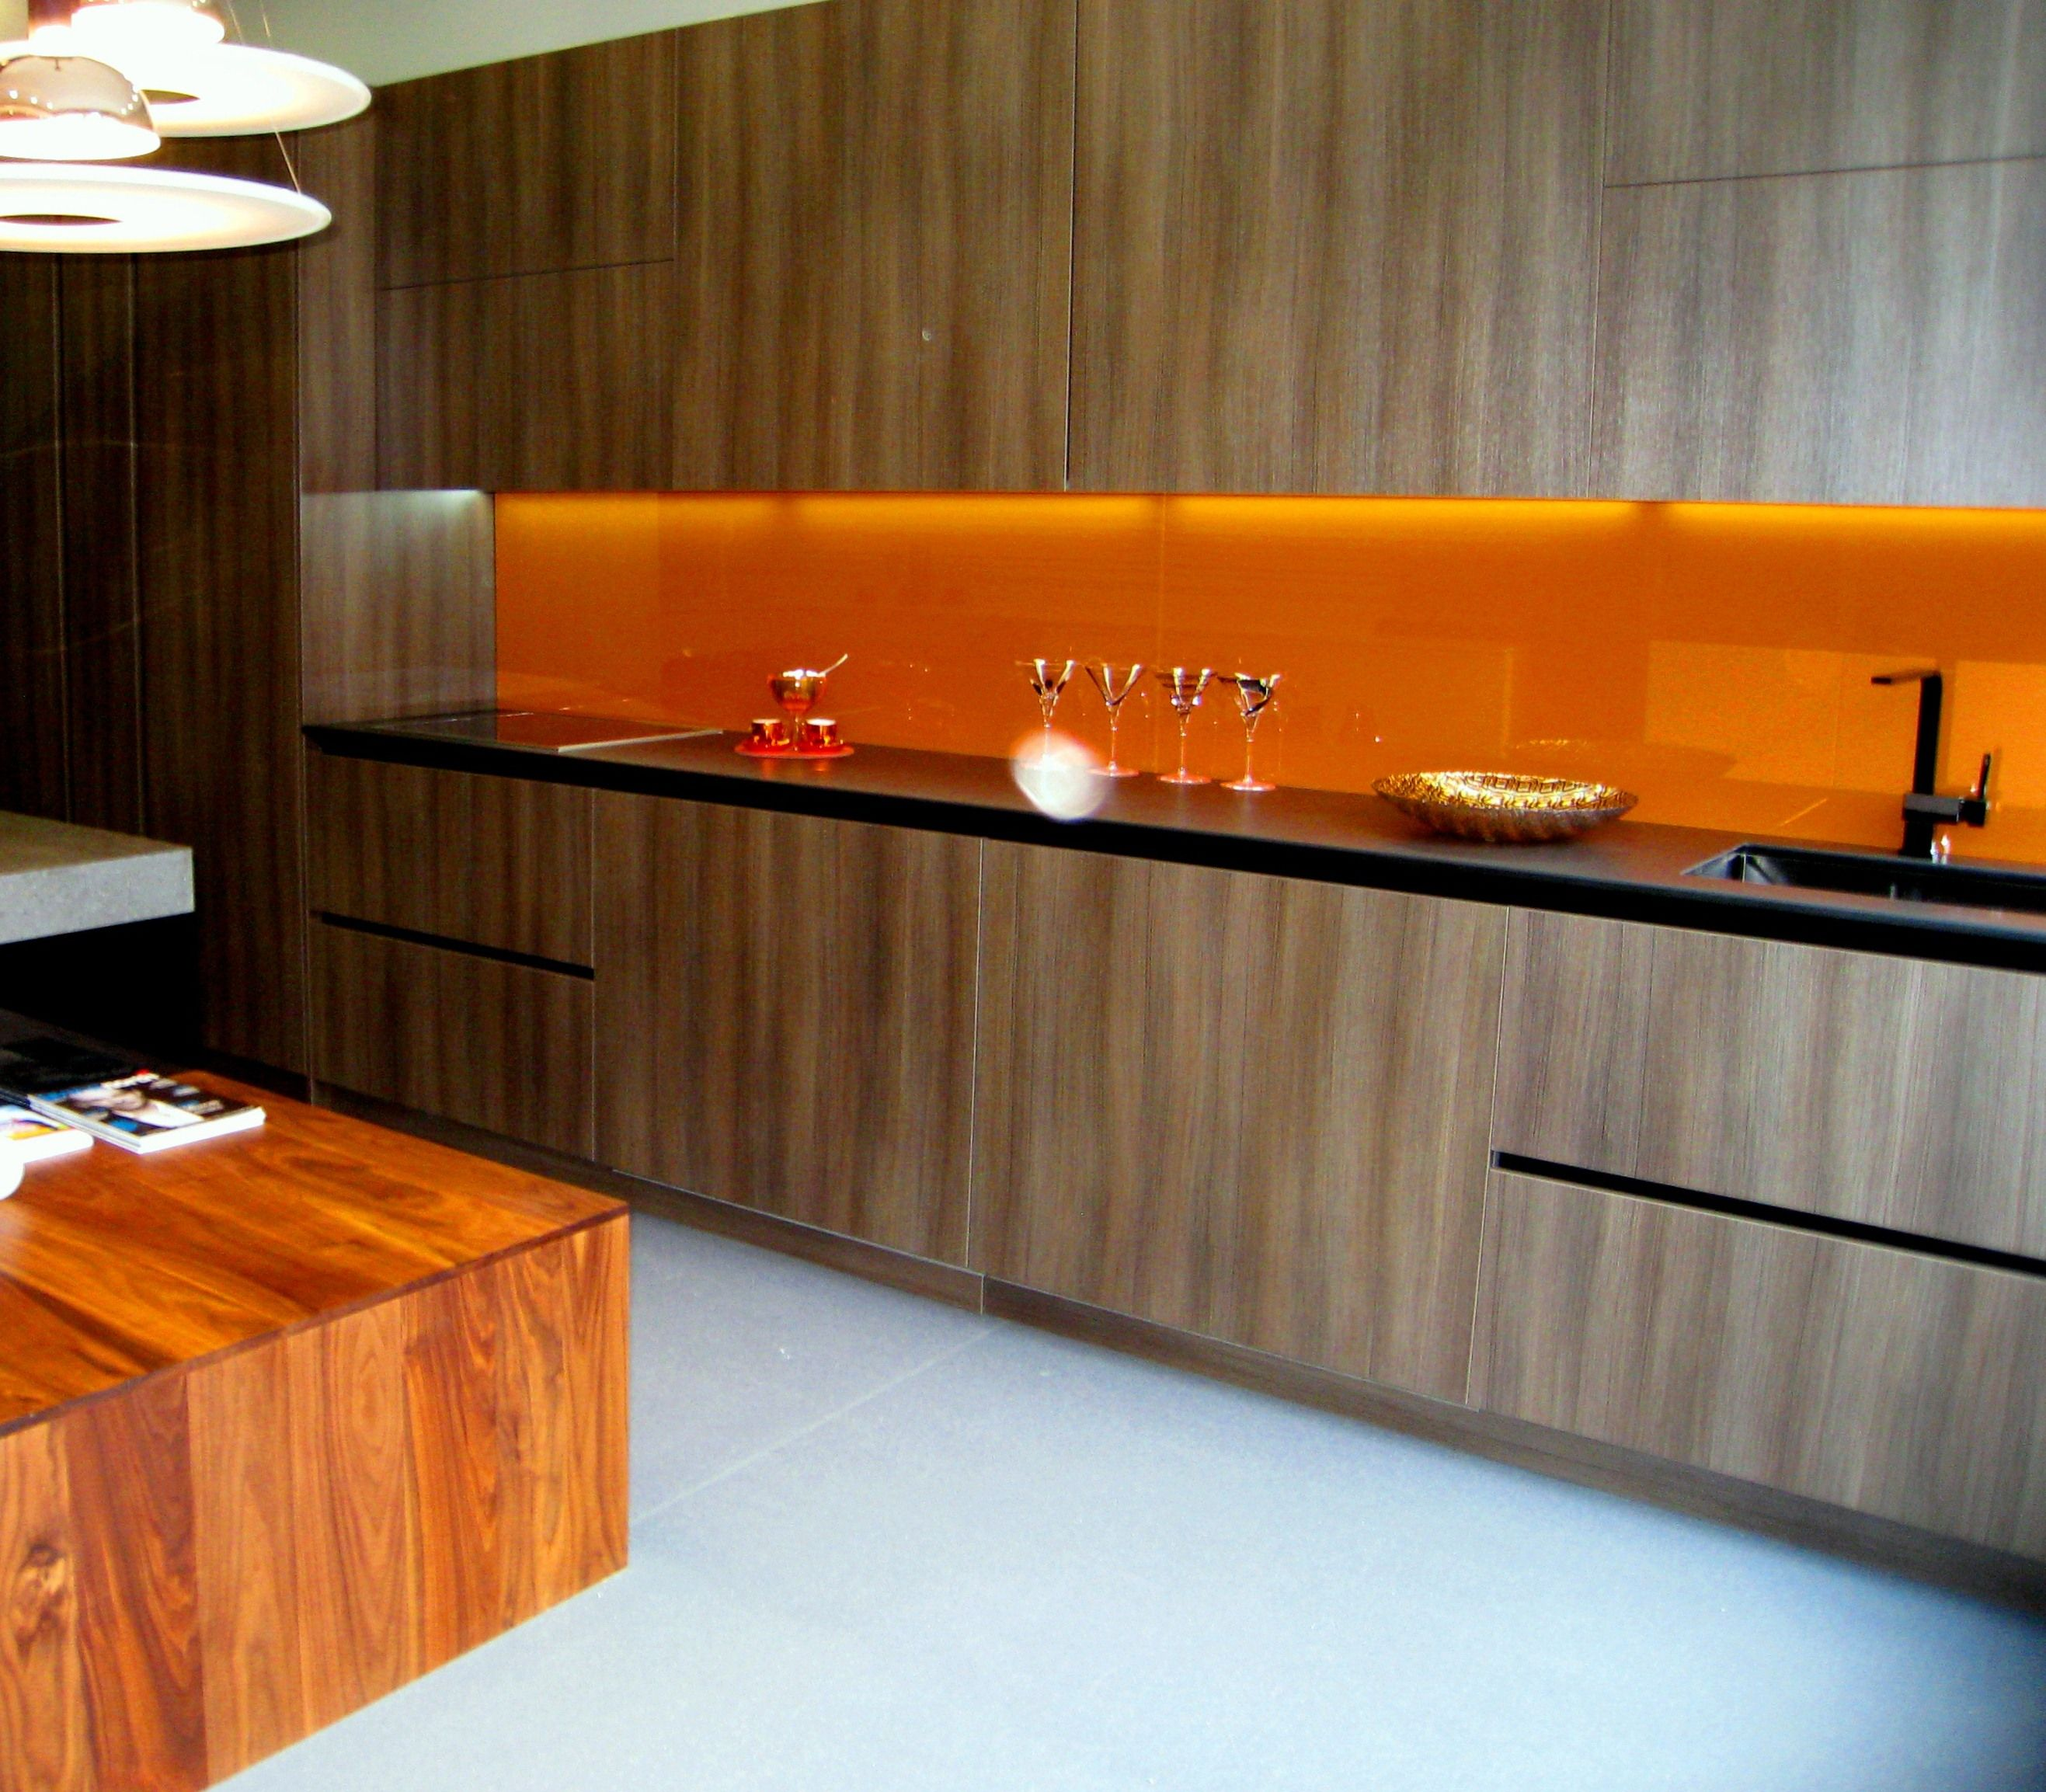 Funktional Kitchens Have On Display, A Range From